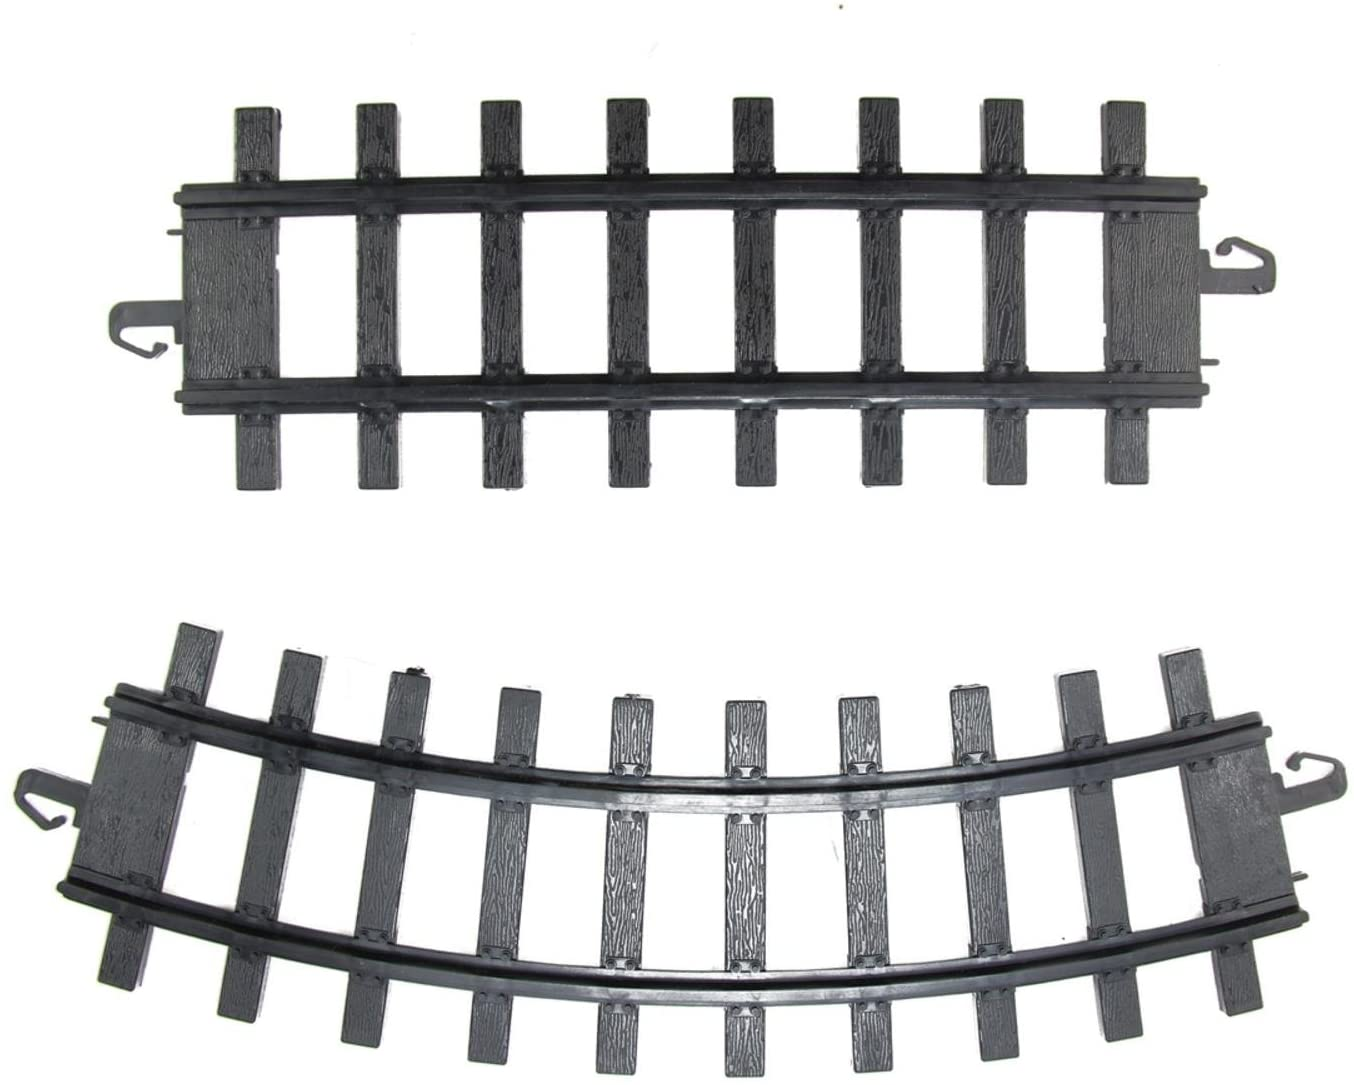 Northlight Pack of 12 Black Replacement Train Set Track Pieces - 4